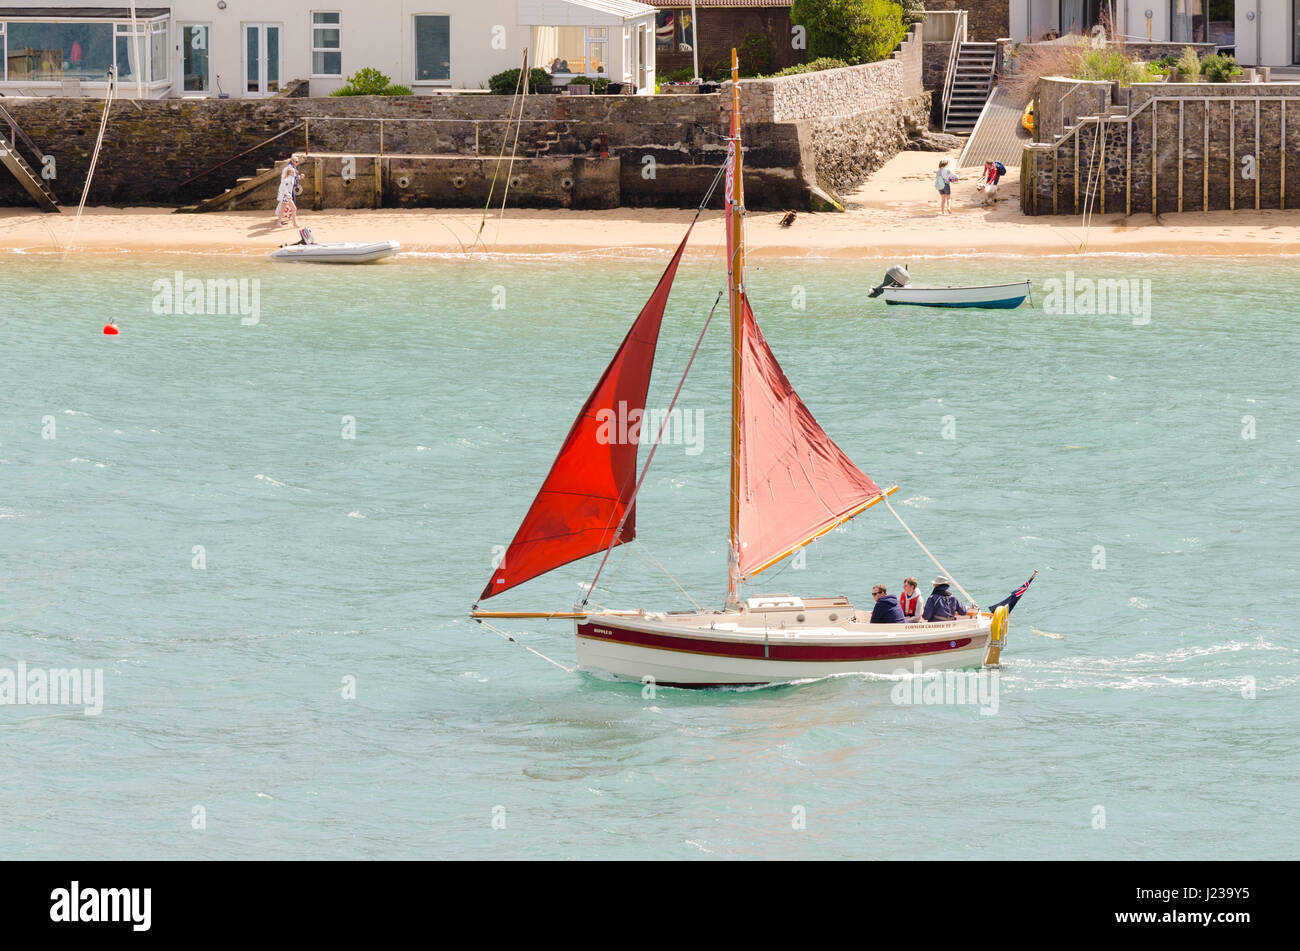 A cornish shrimper with red sails sailing along Salcombe estuary - Stock Image